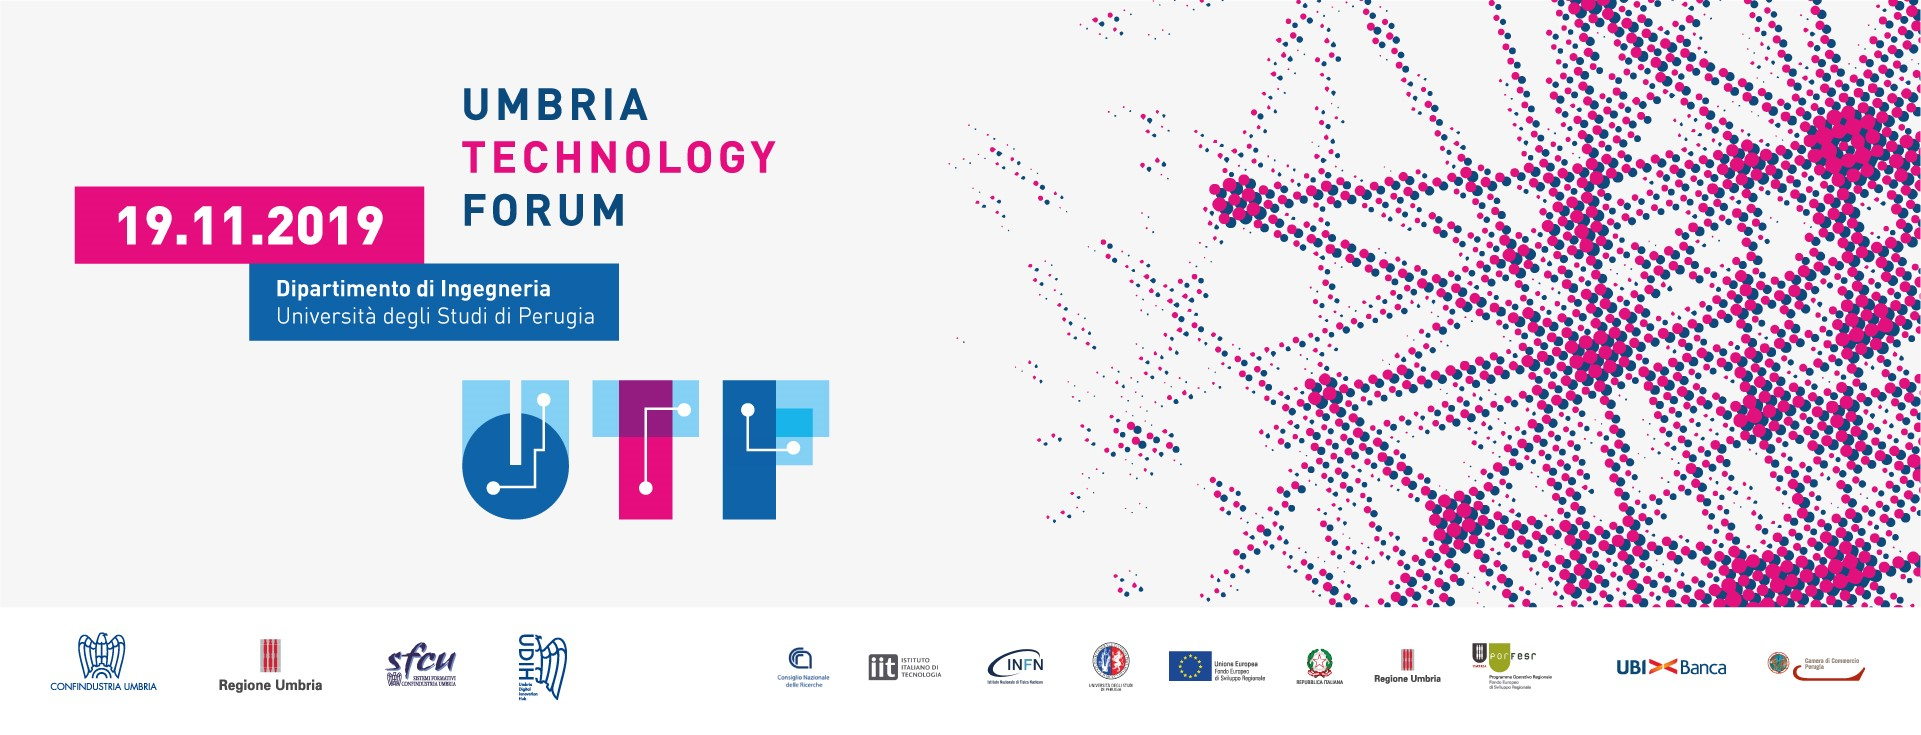 Umbria technology Forum